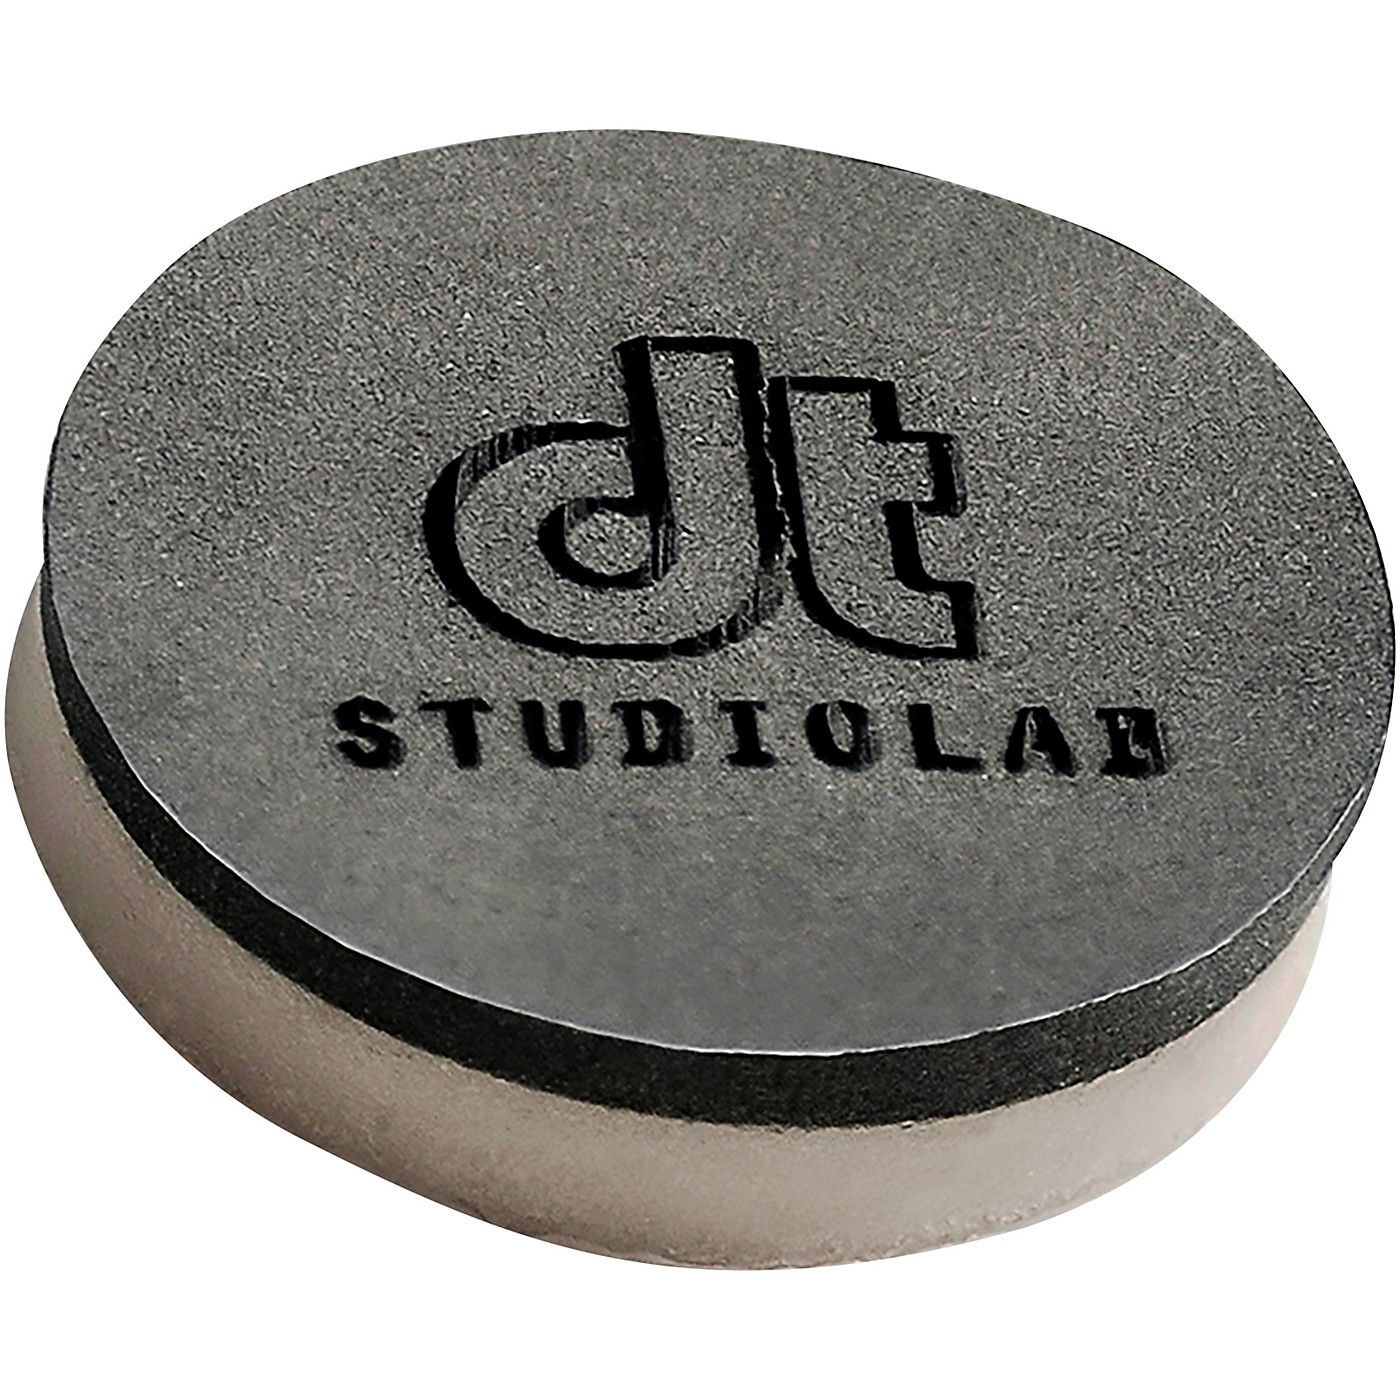 Studio Lab Percussion Drumtacs Sound Control Pads 5-Pack thumbnail